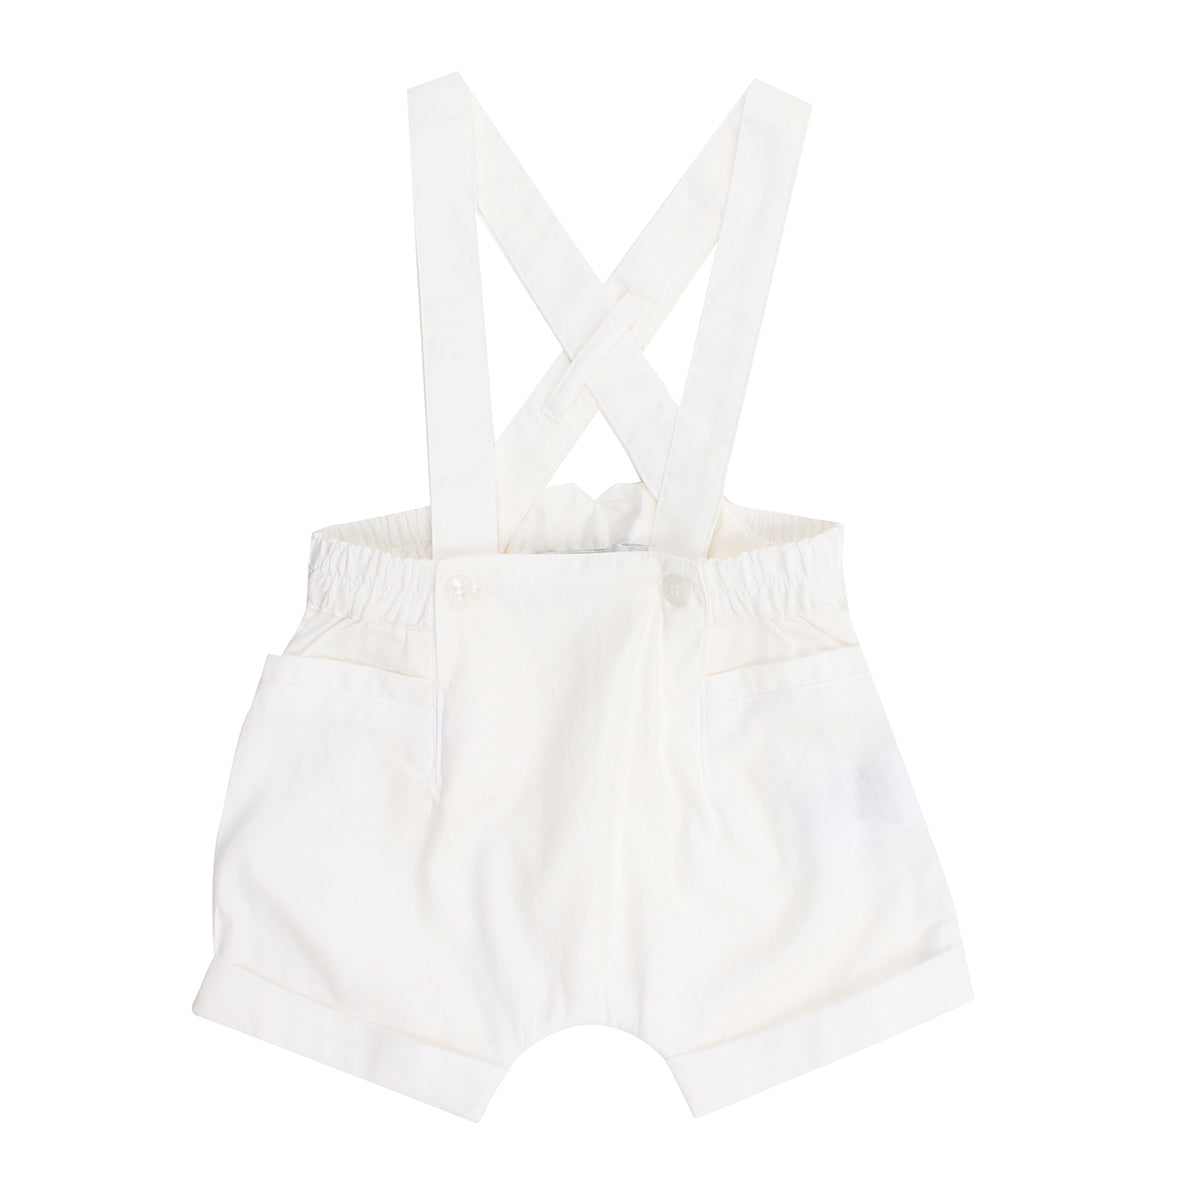 BÉBÉ by MINIHAHA - Special Occasion Ivory Boys Woven Overall